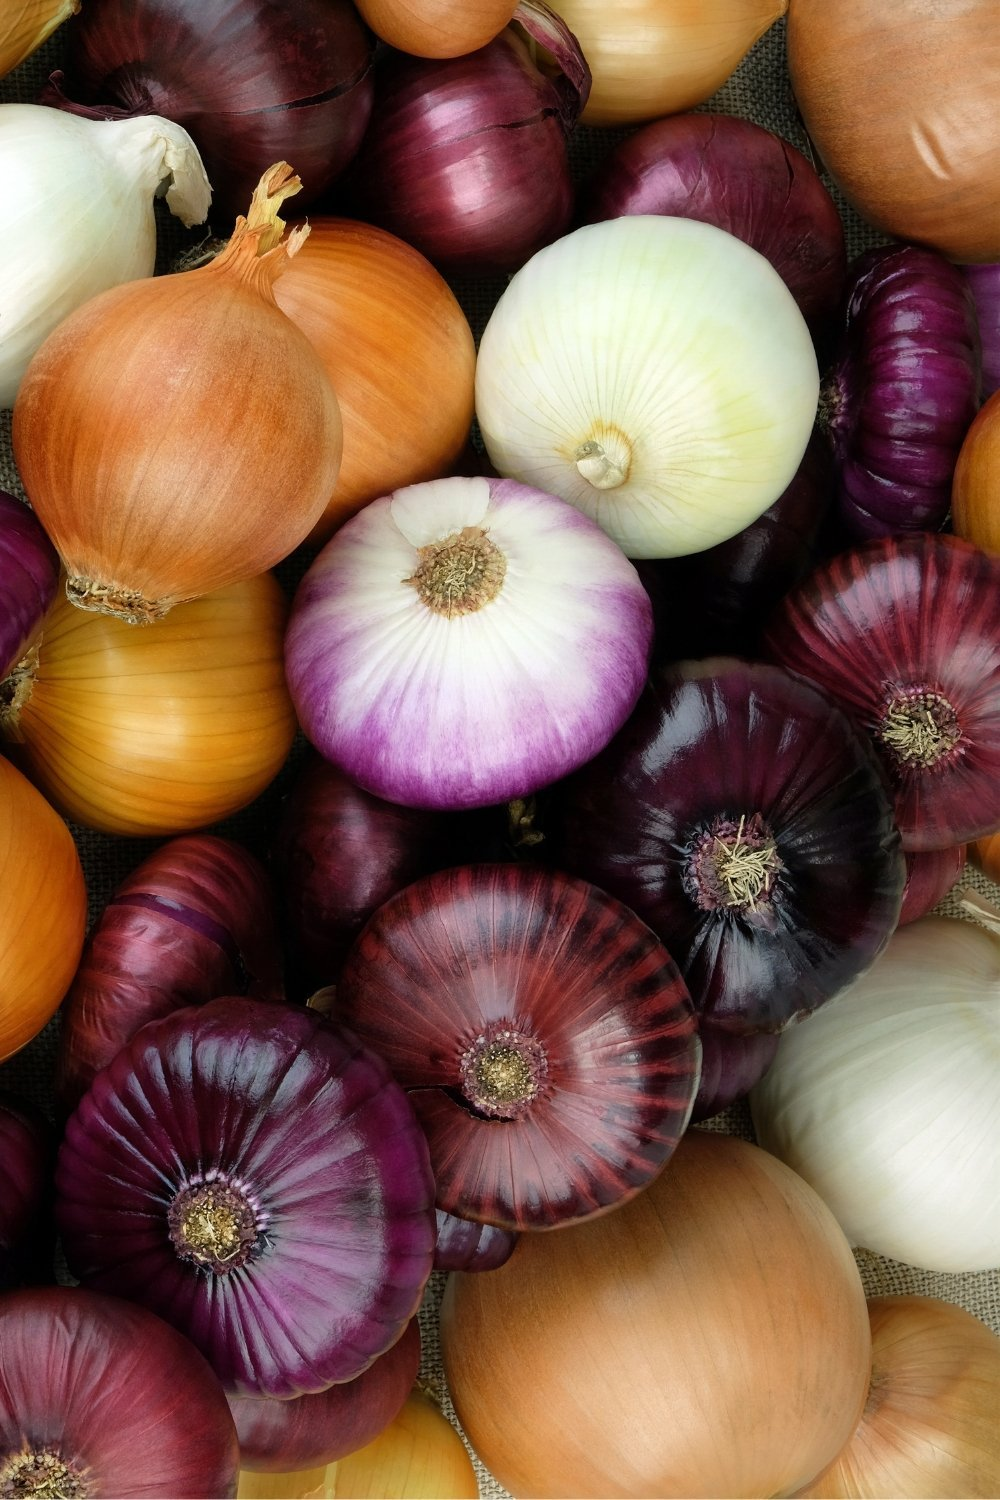 Many onion varieties